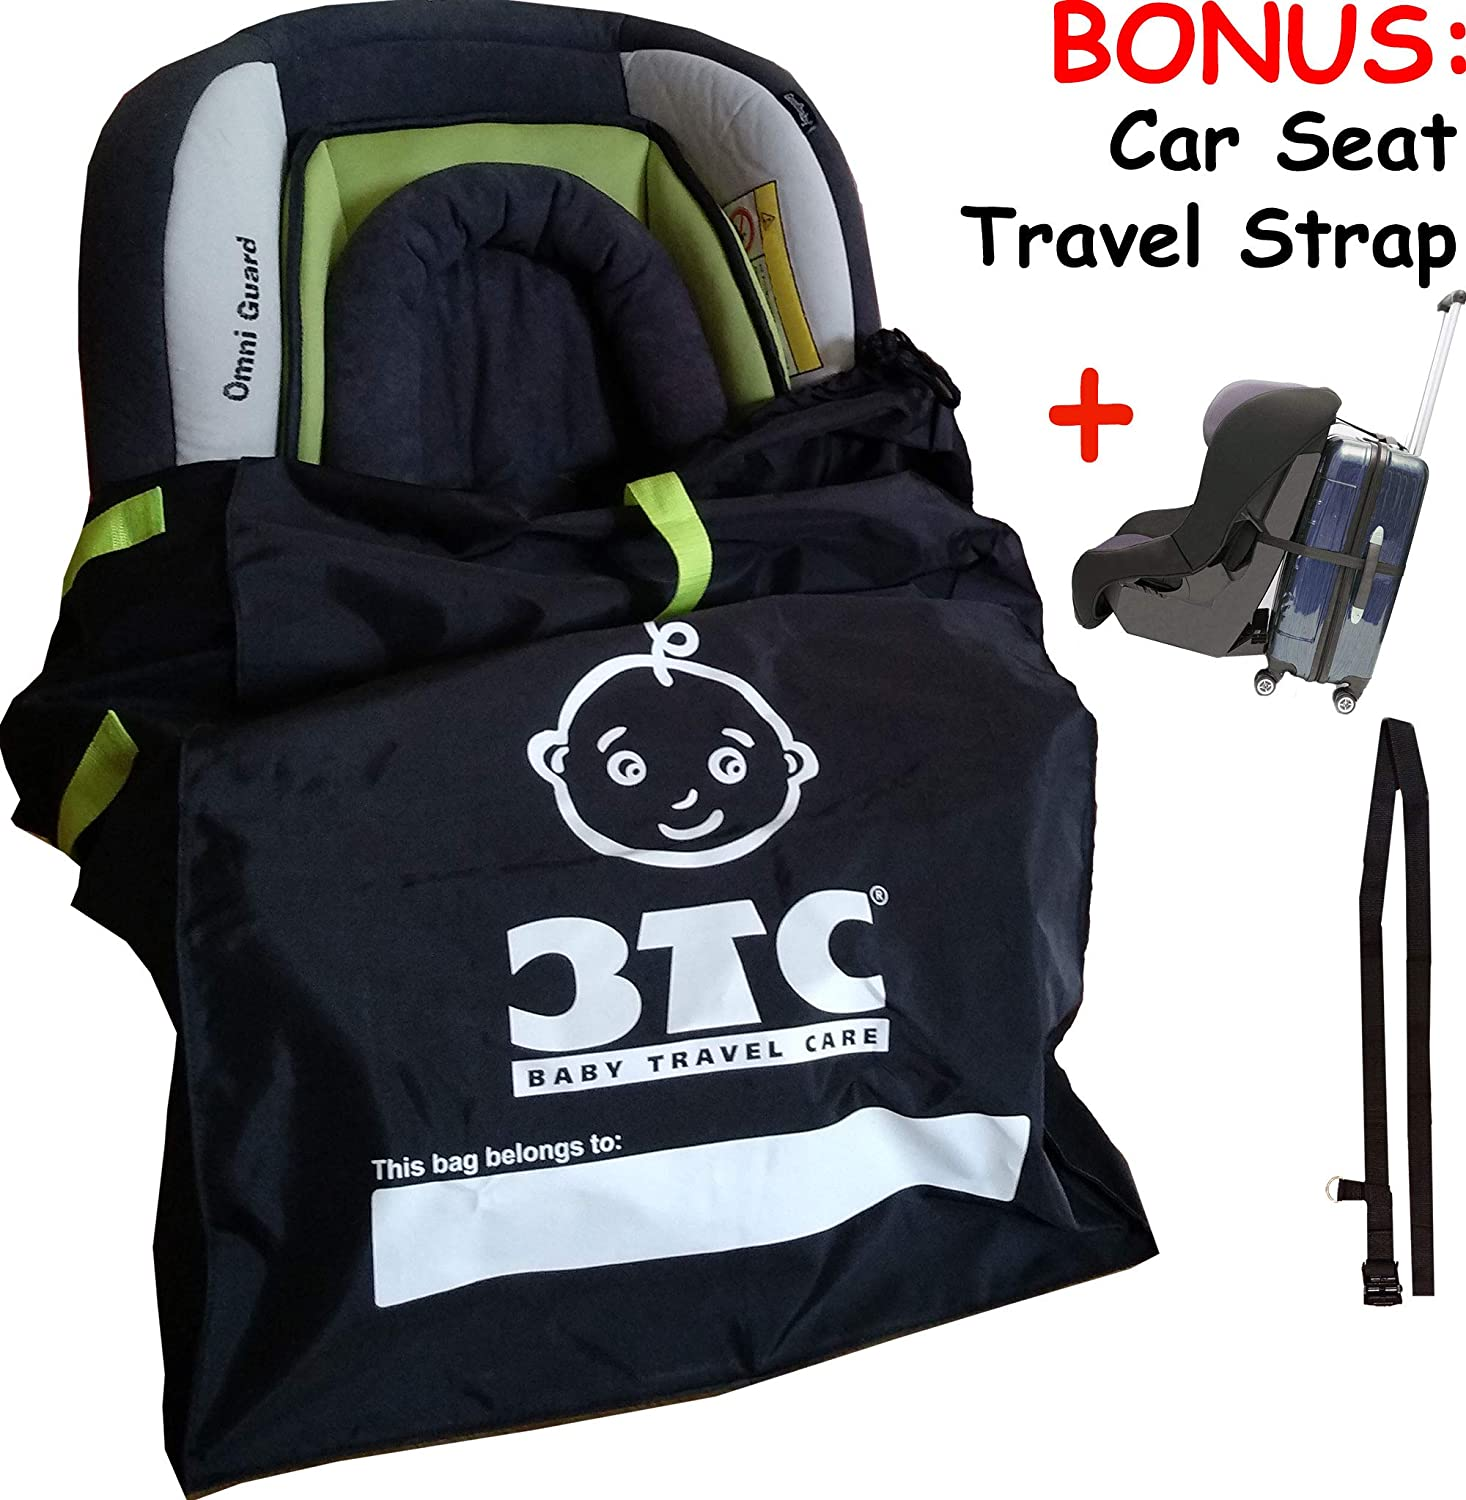 Car Seat Travel Bag With Bonus Strap That Converts Suitcase Into Rolling Stroller Faster Check In At Airports